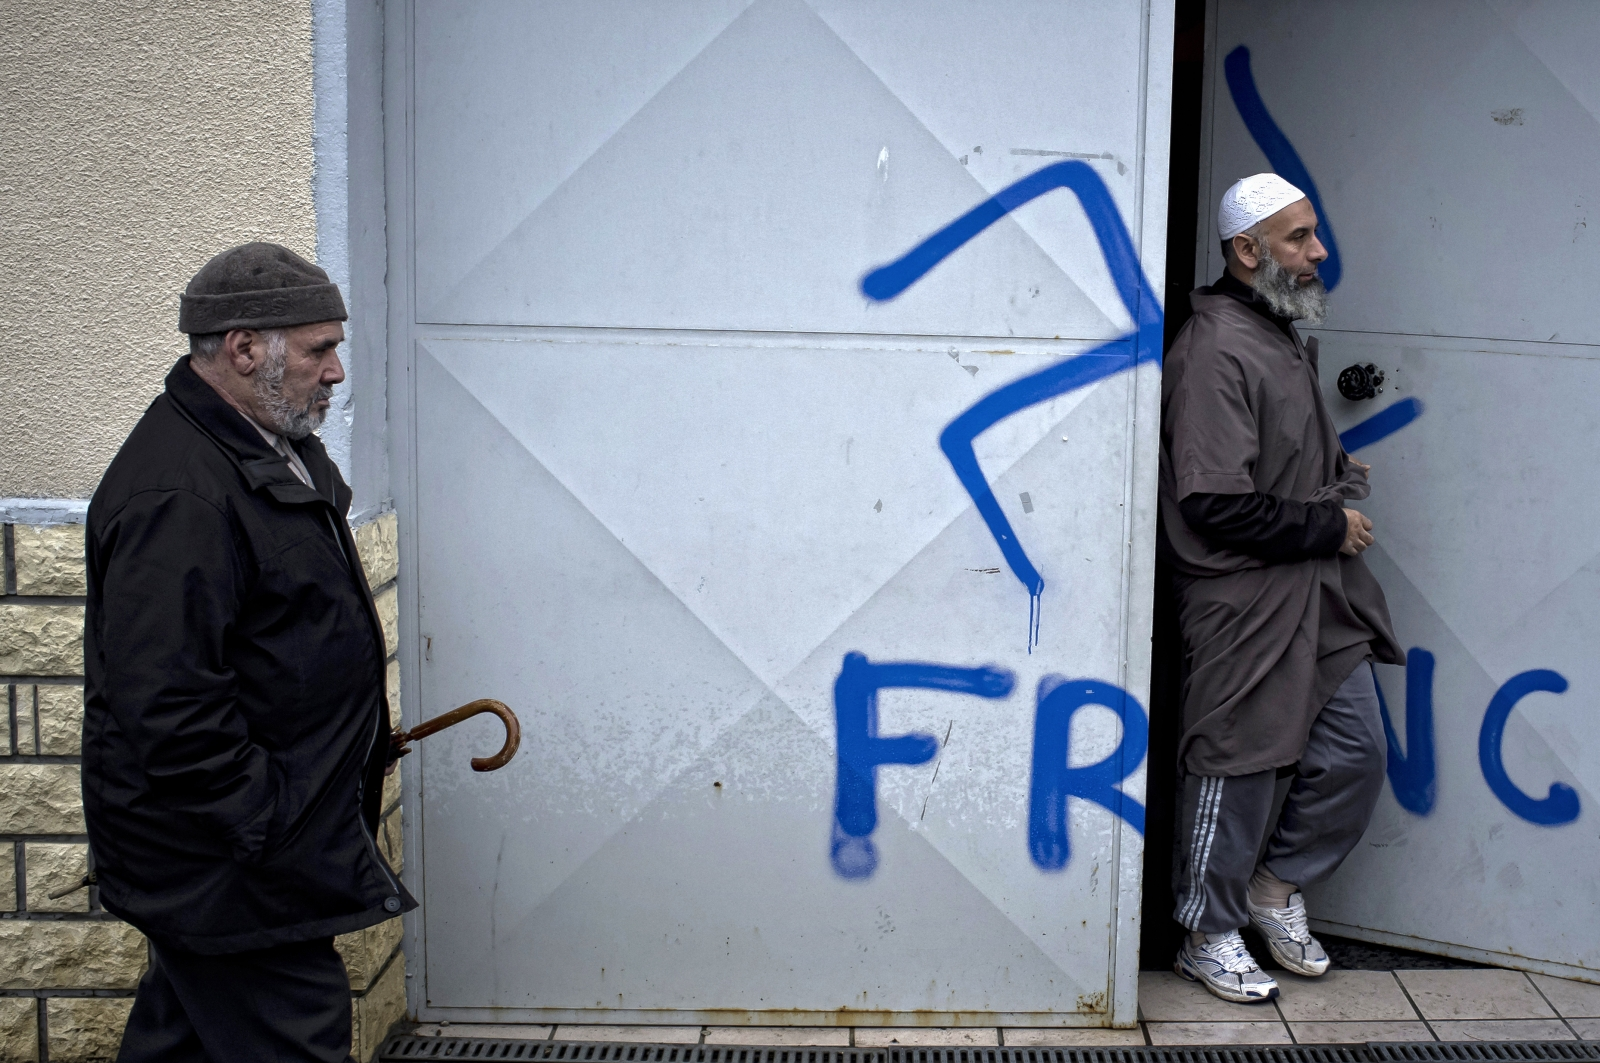 Racist graffiti scrawled on the doors of a Lyon mosque (Getty)